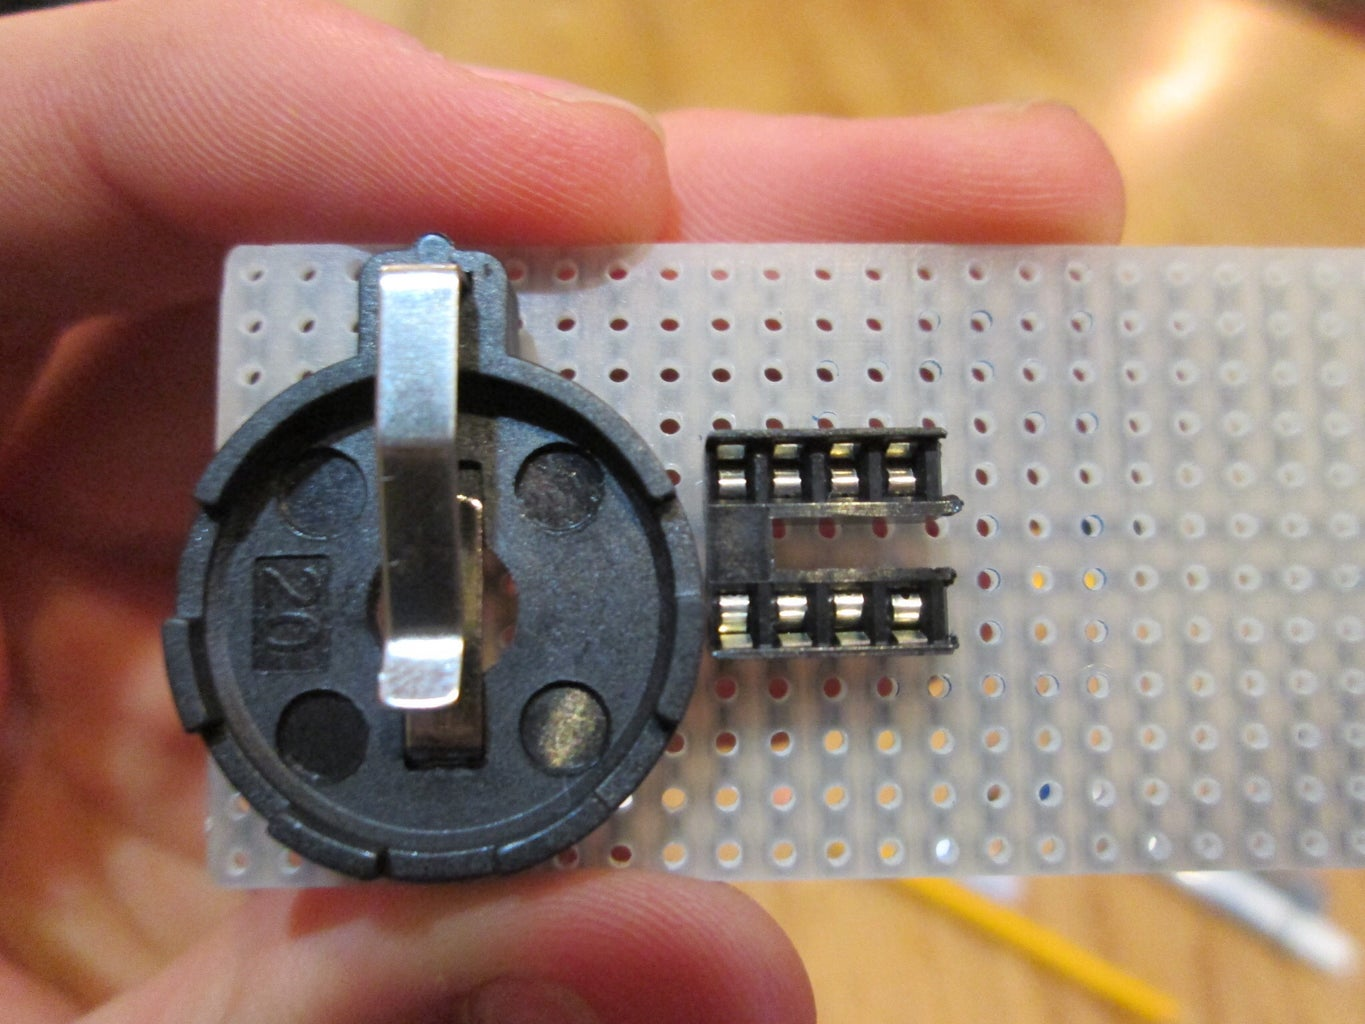 Add Socket and Battery Holder to Stripboard